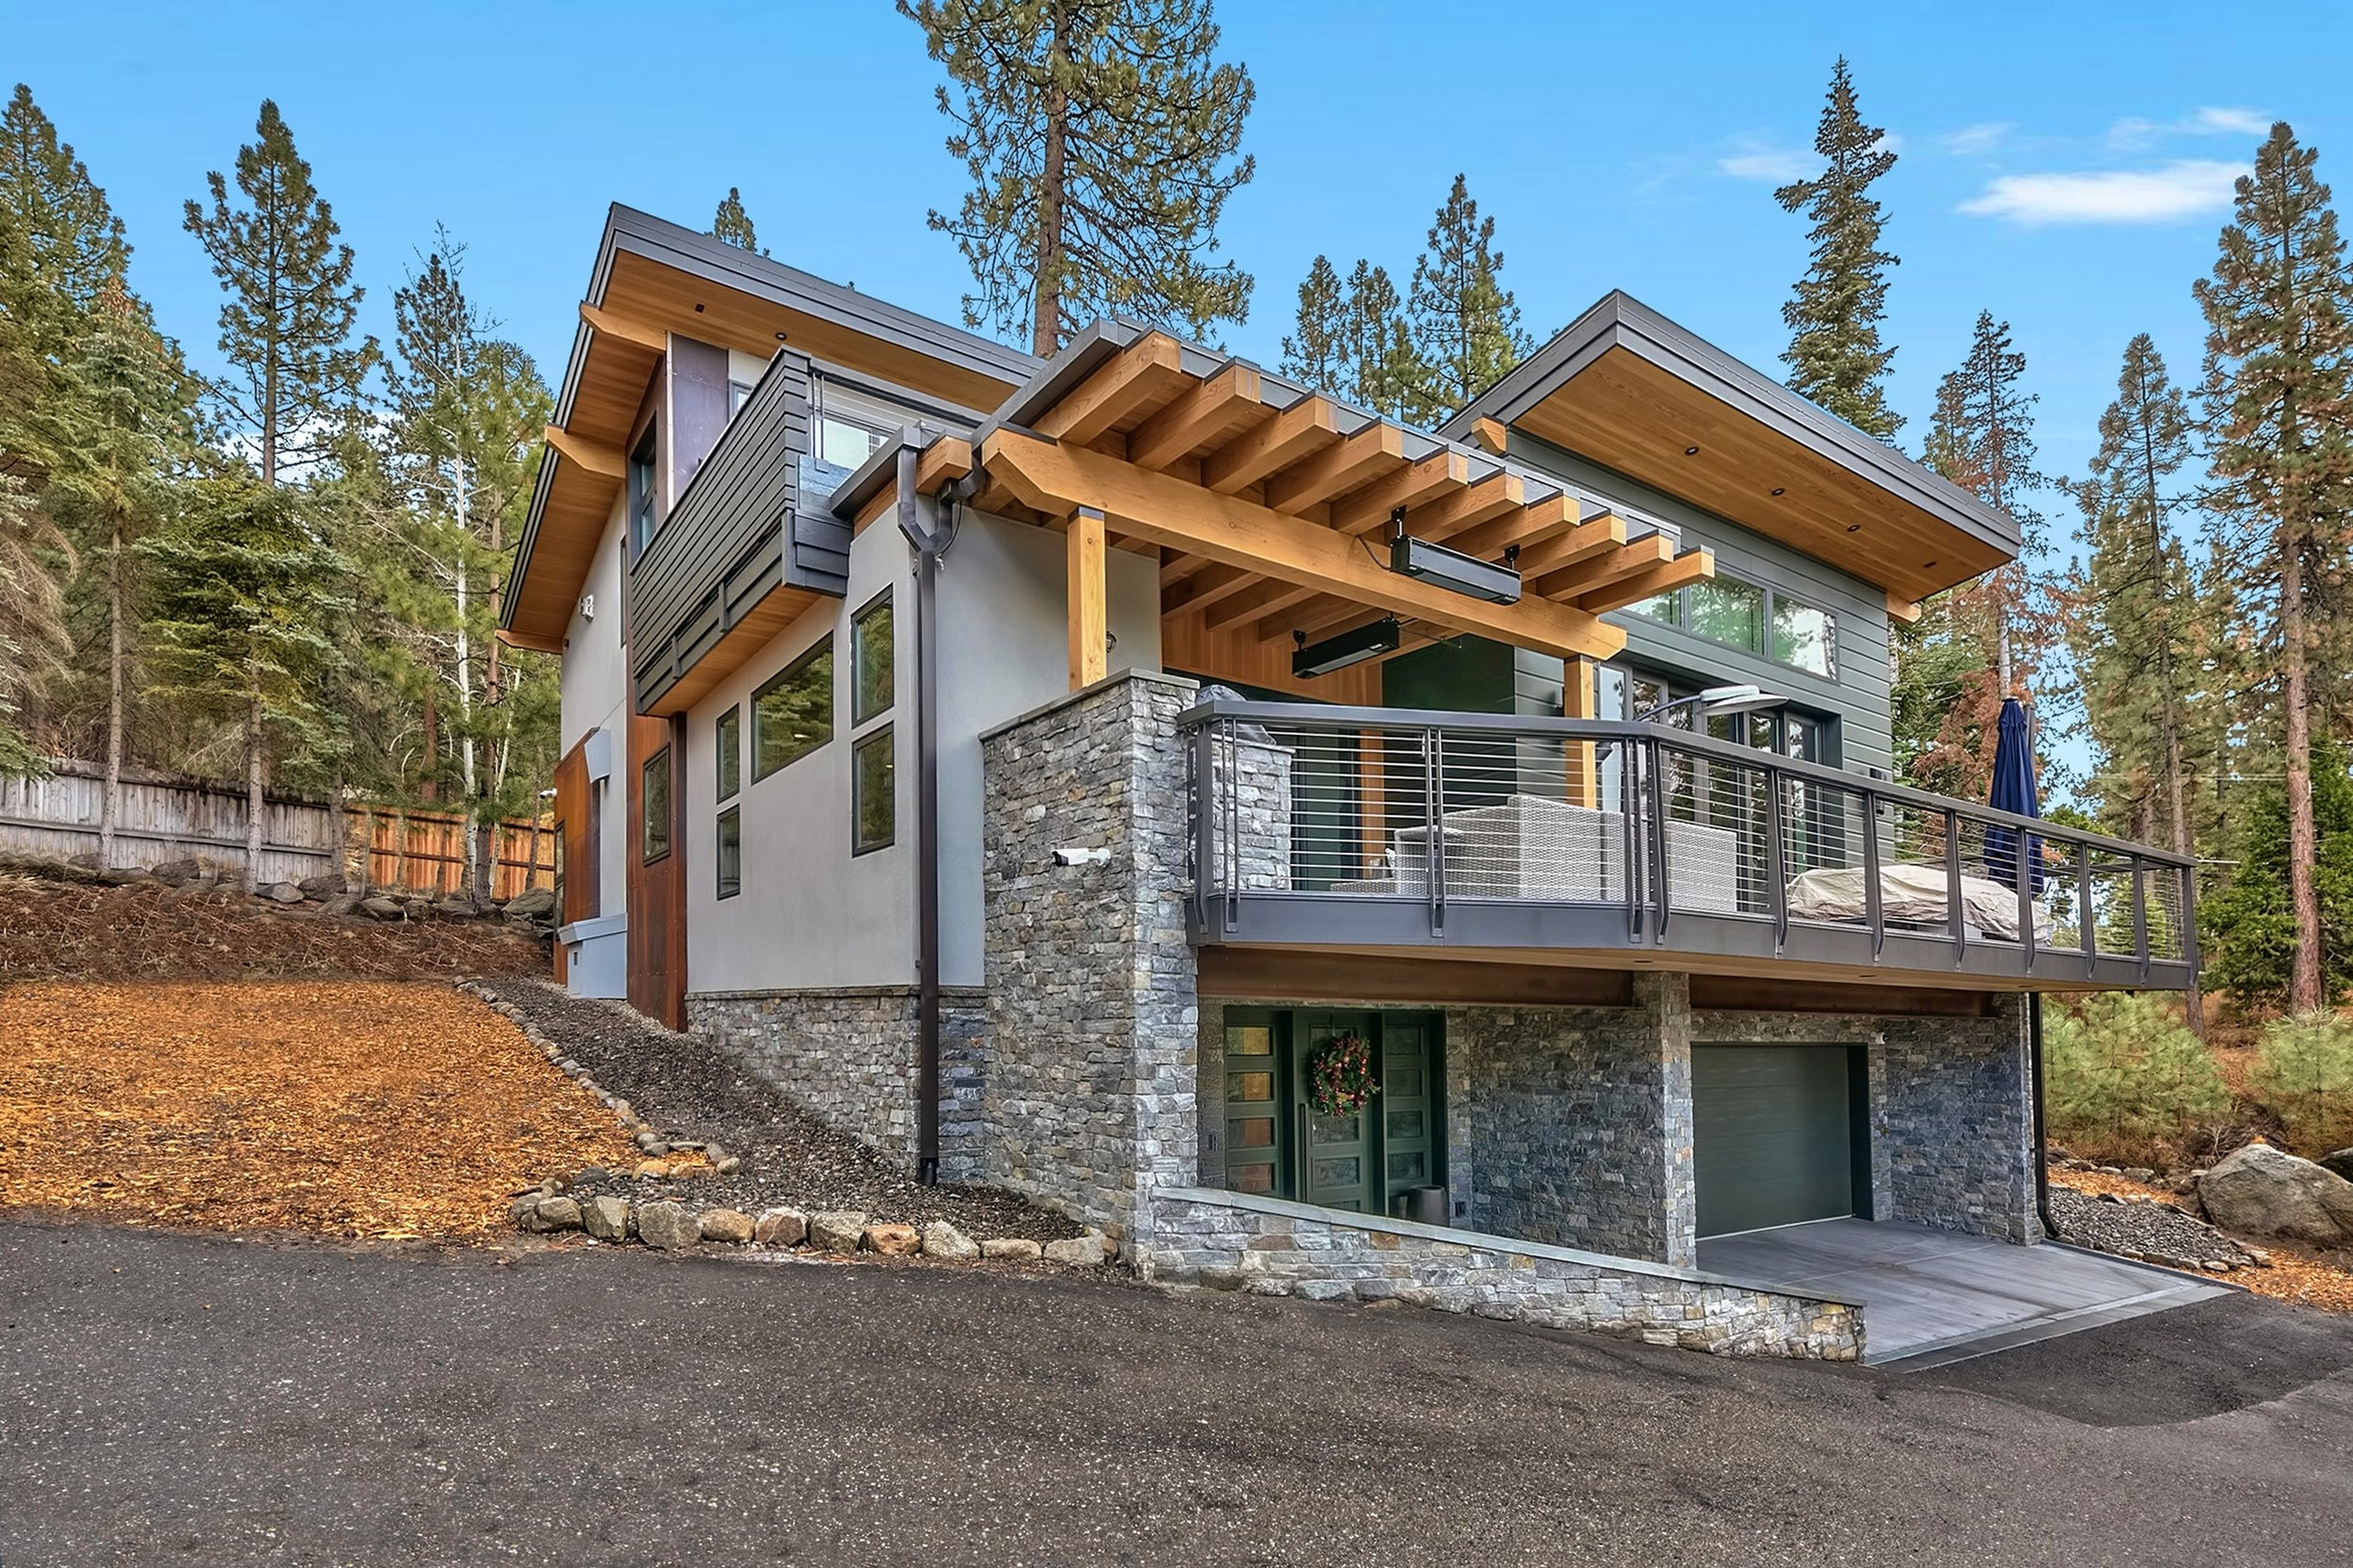 15 Lakeside Cove exterior.jpg